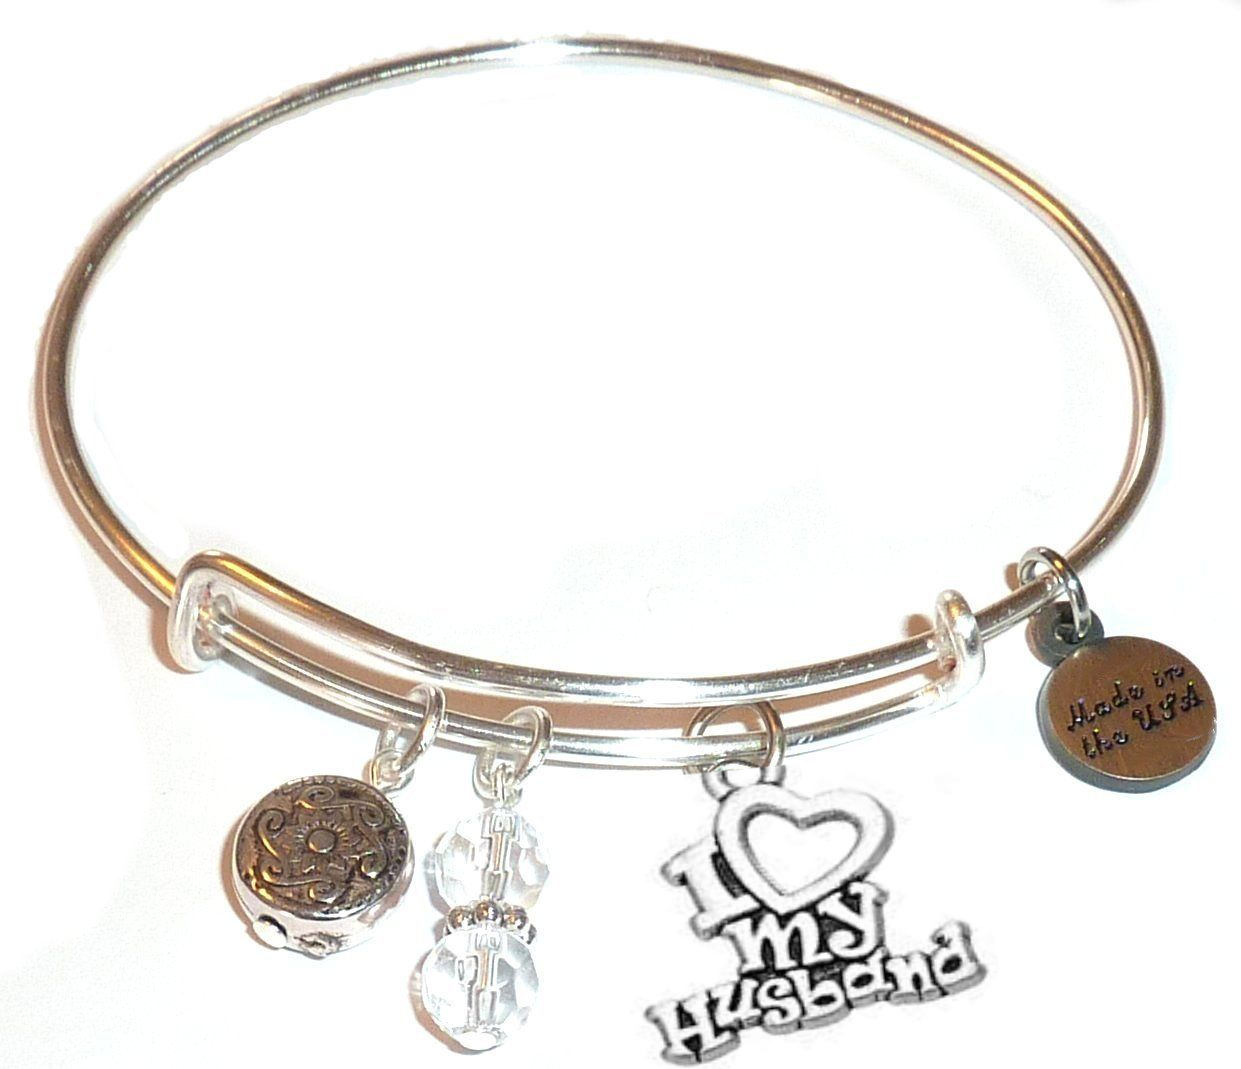 mother's day gift idea - i love my husband bangle bracelet